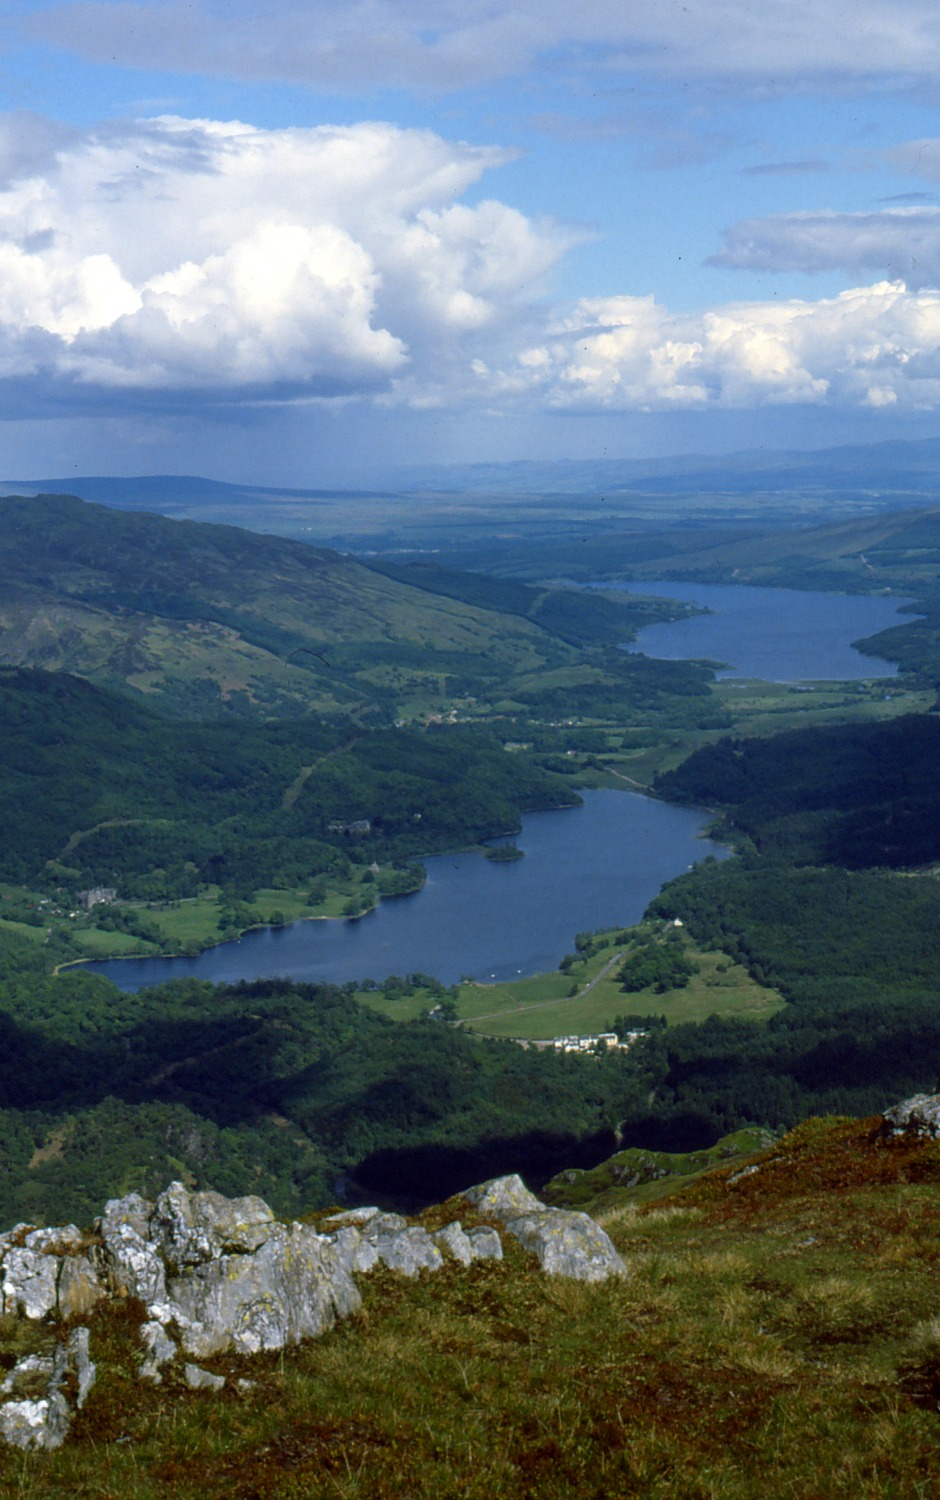 Lochs Achray and (distant) Venachar from summit of Ben Venue, TroSSachs - Scotland tourism heartlaNDS.